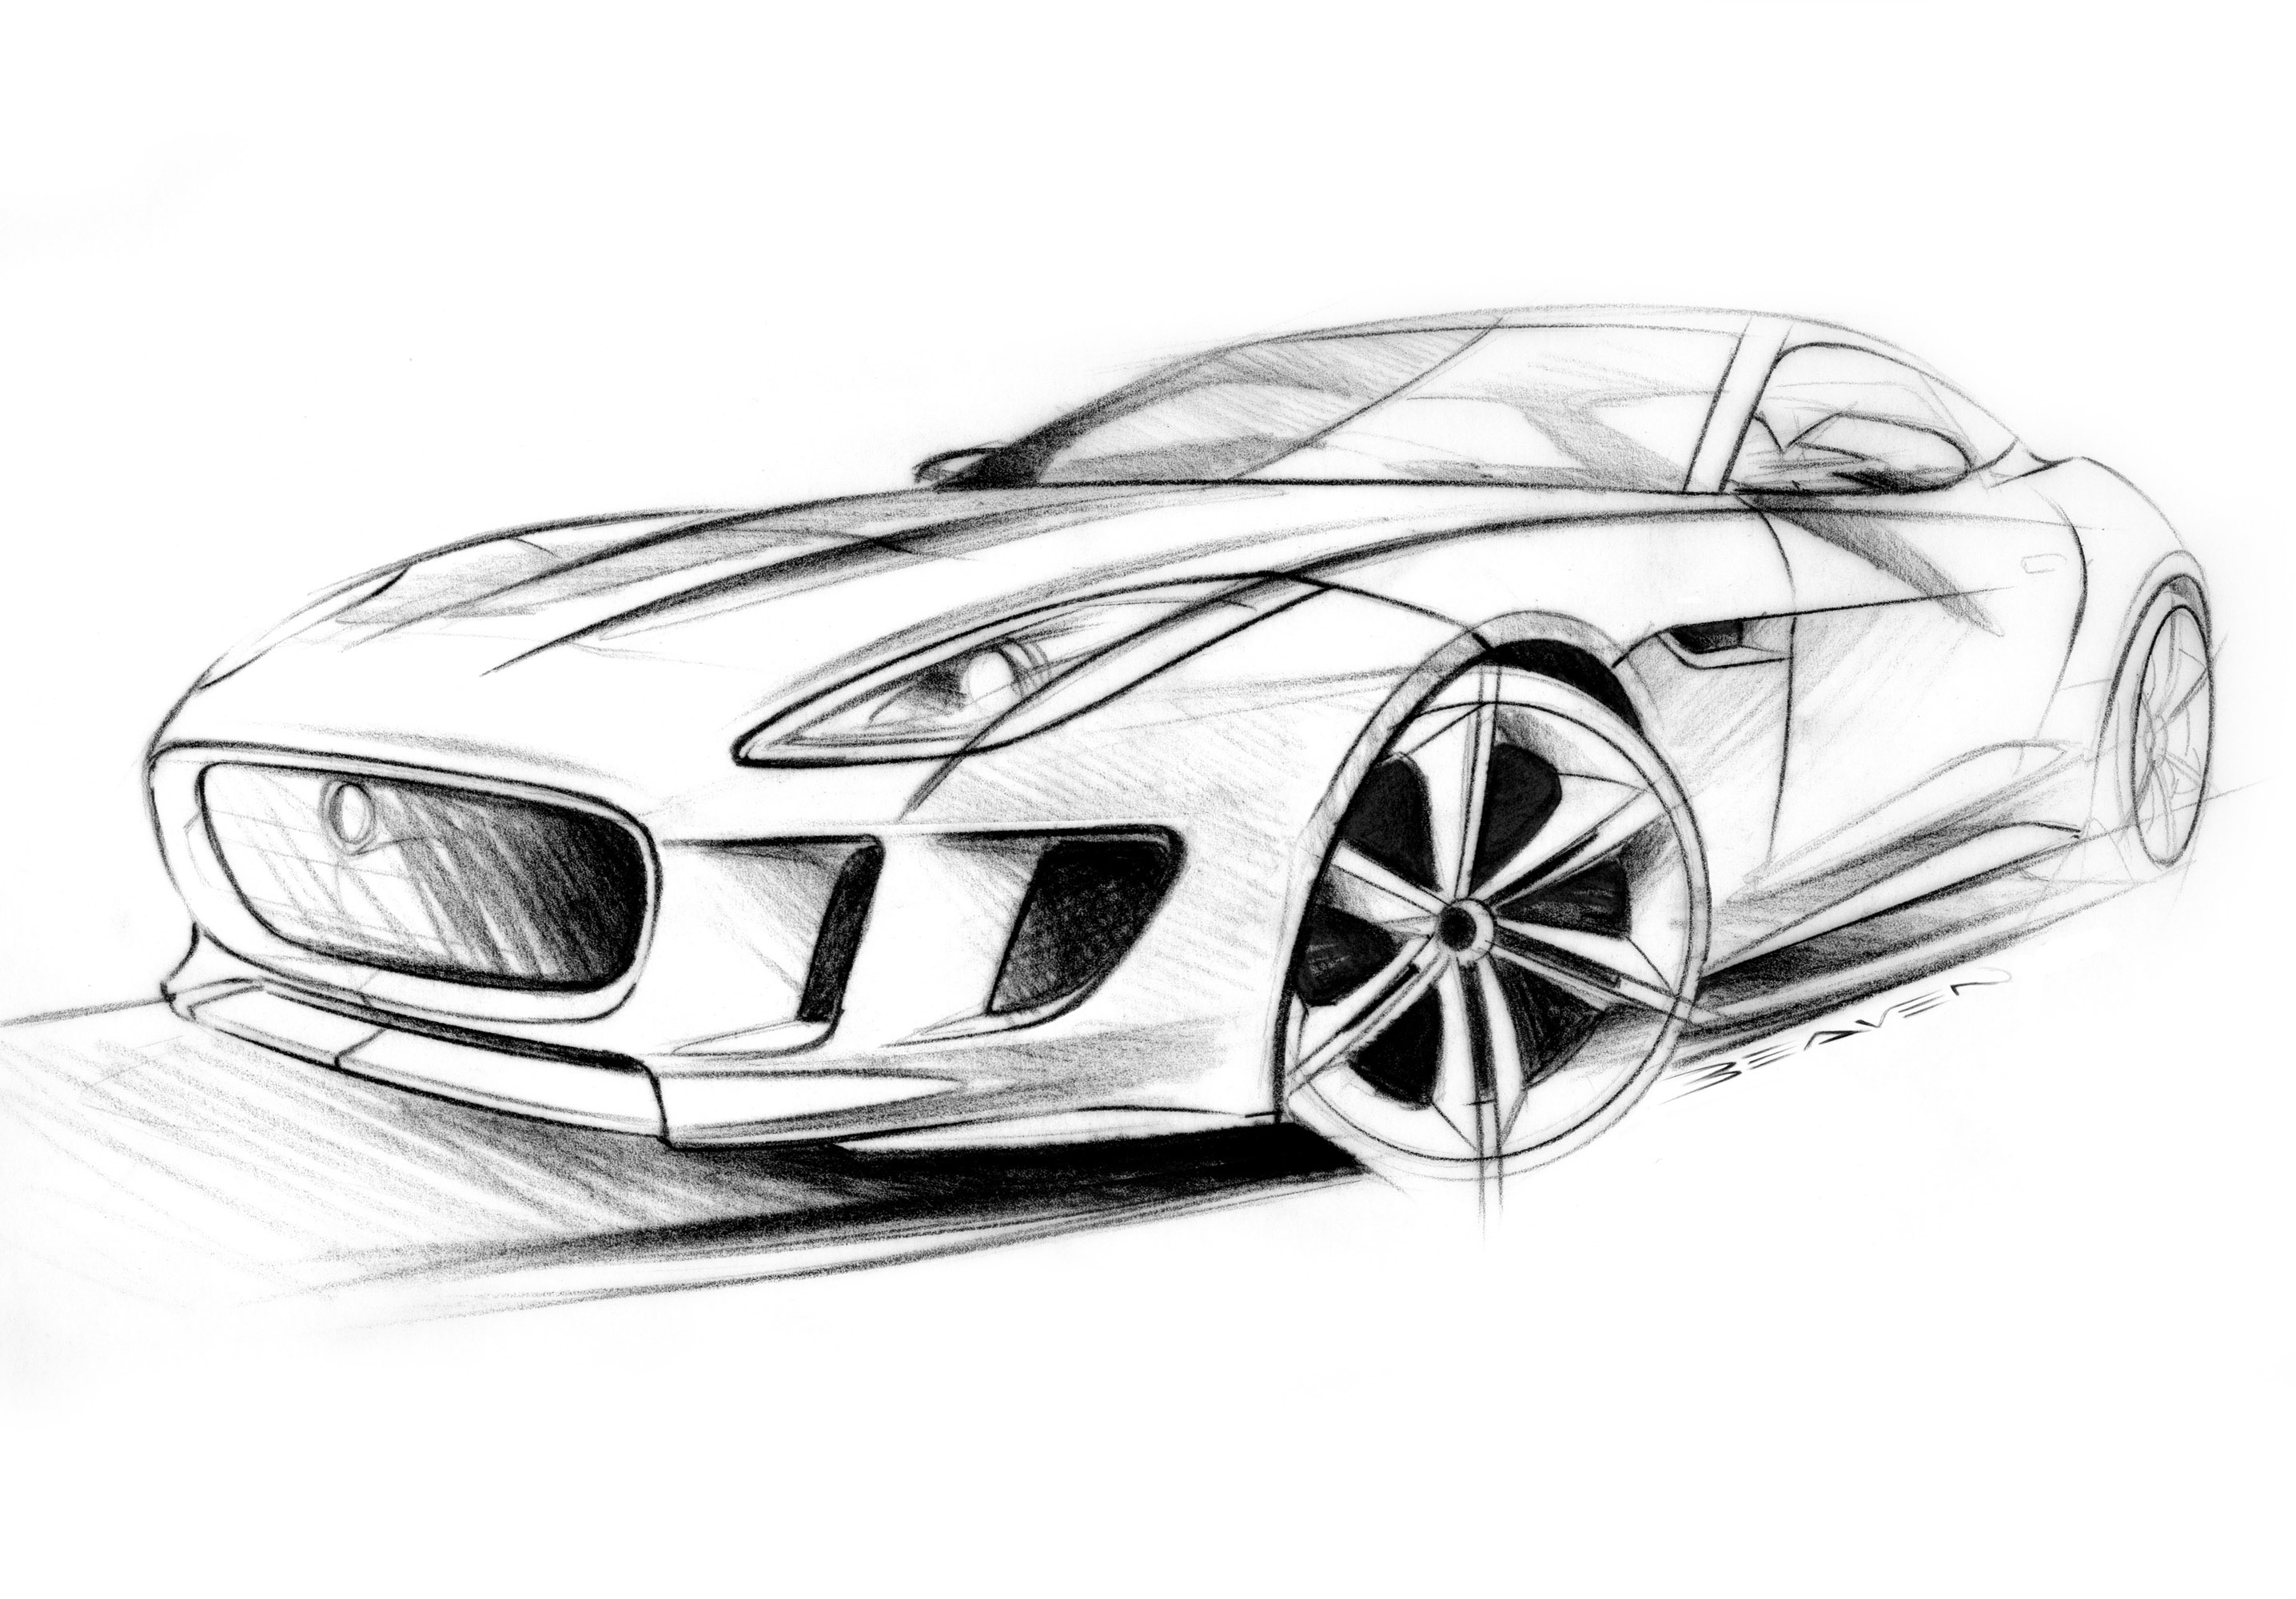 2872x2000 car pencil drawings and pencil sketch of sports new cars pencil